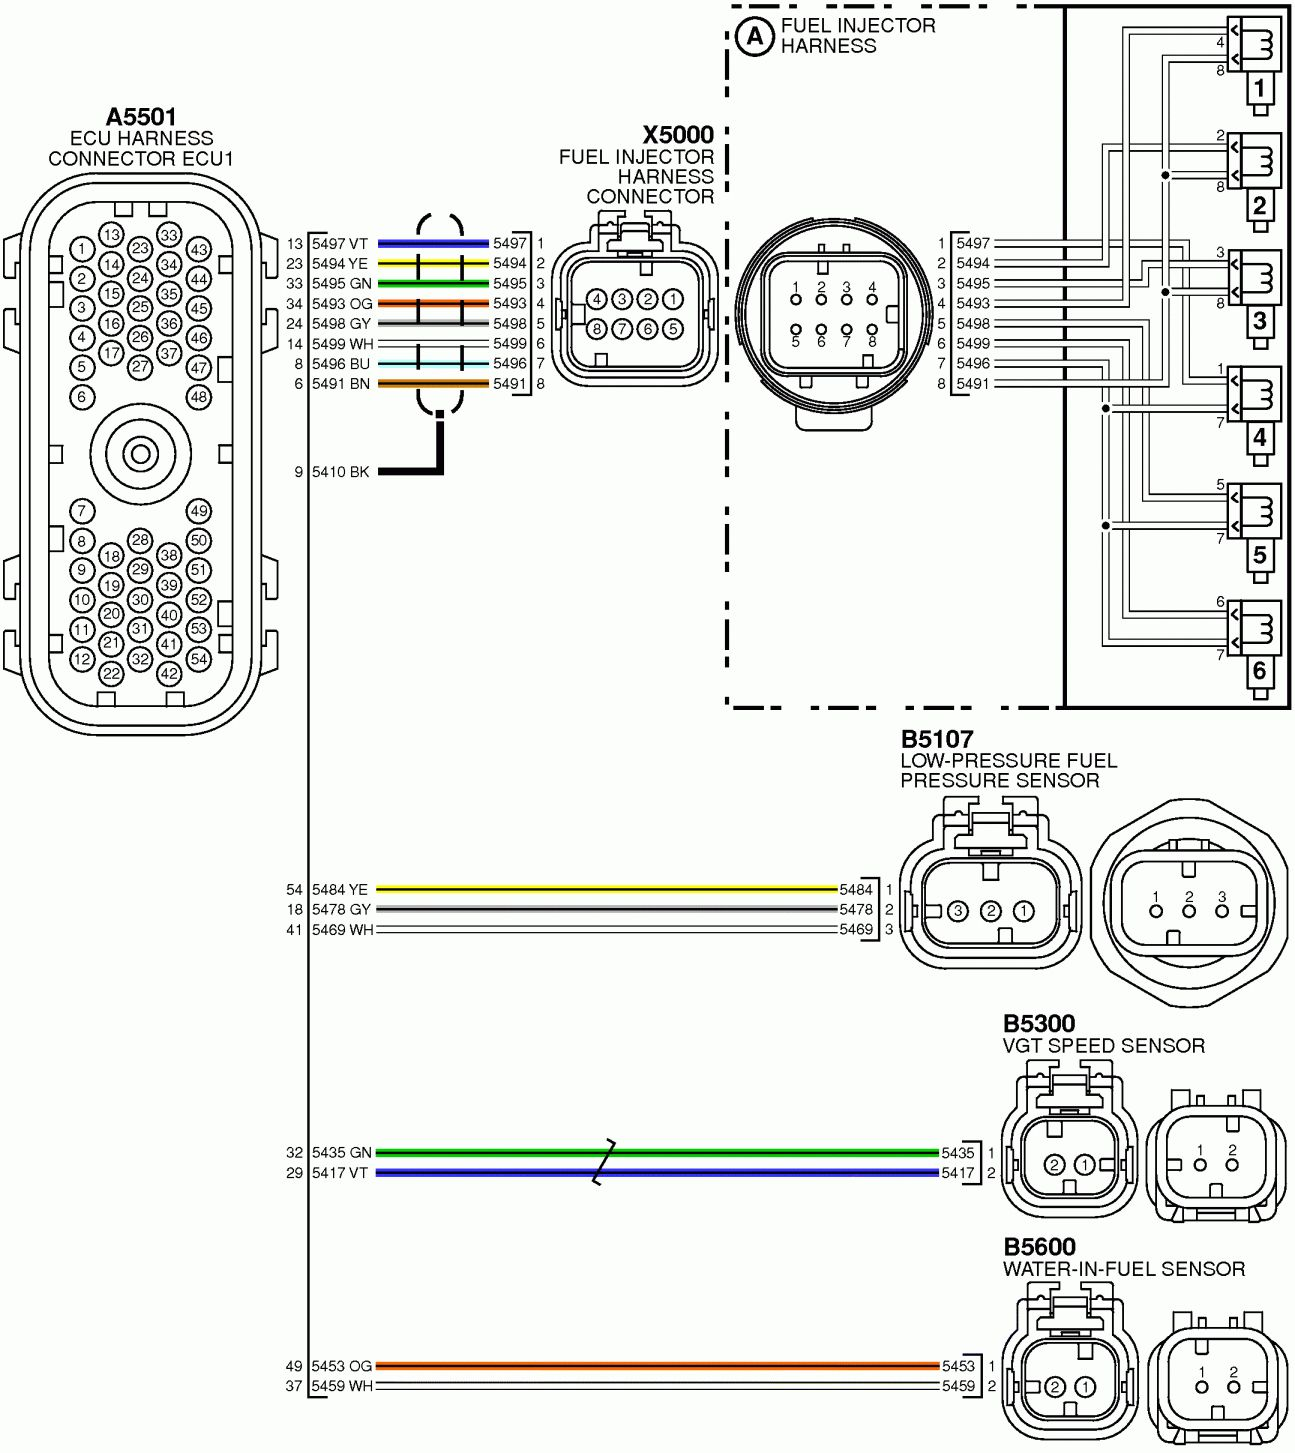 1976 Dodge Pickup Wire Harness | schematic and wiring diagram